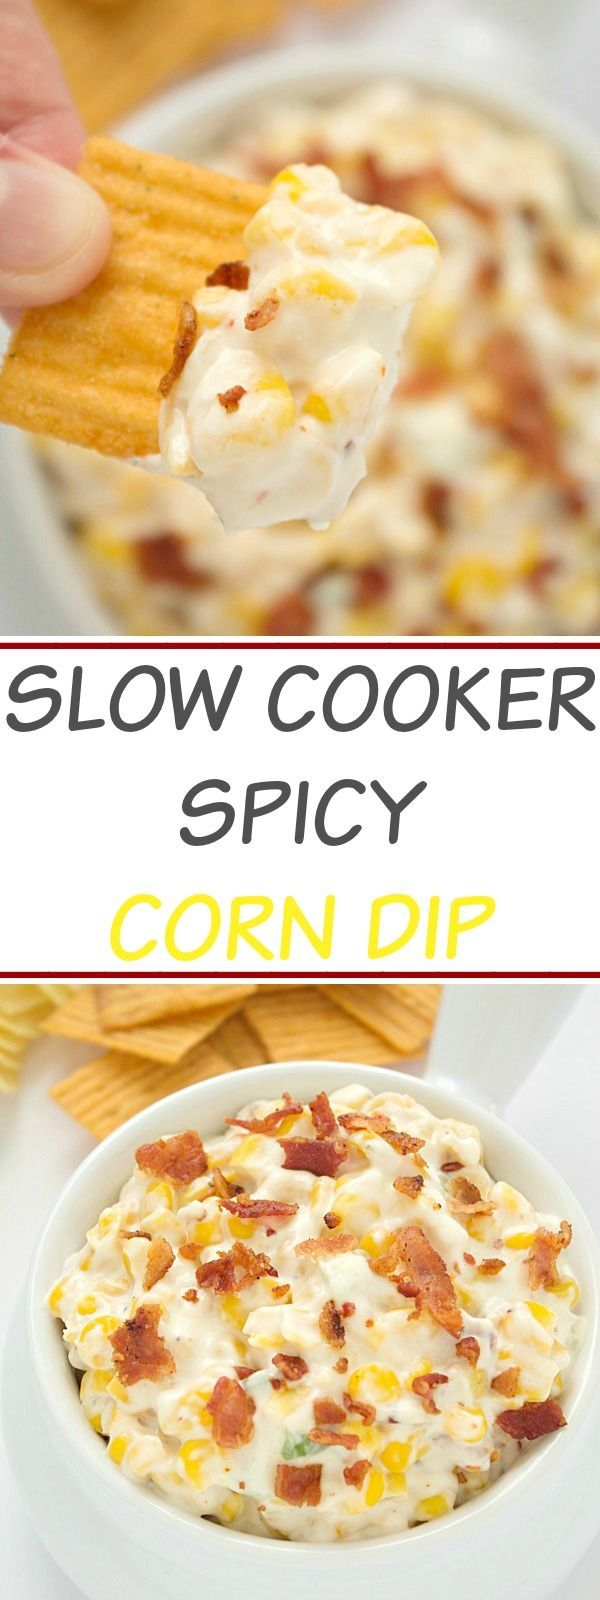 An out-of-this-world delicious and very addicting slow cooker spicy corn dip recipe! Great for the big games